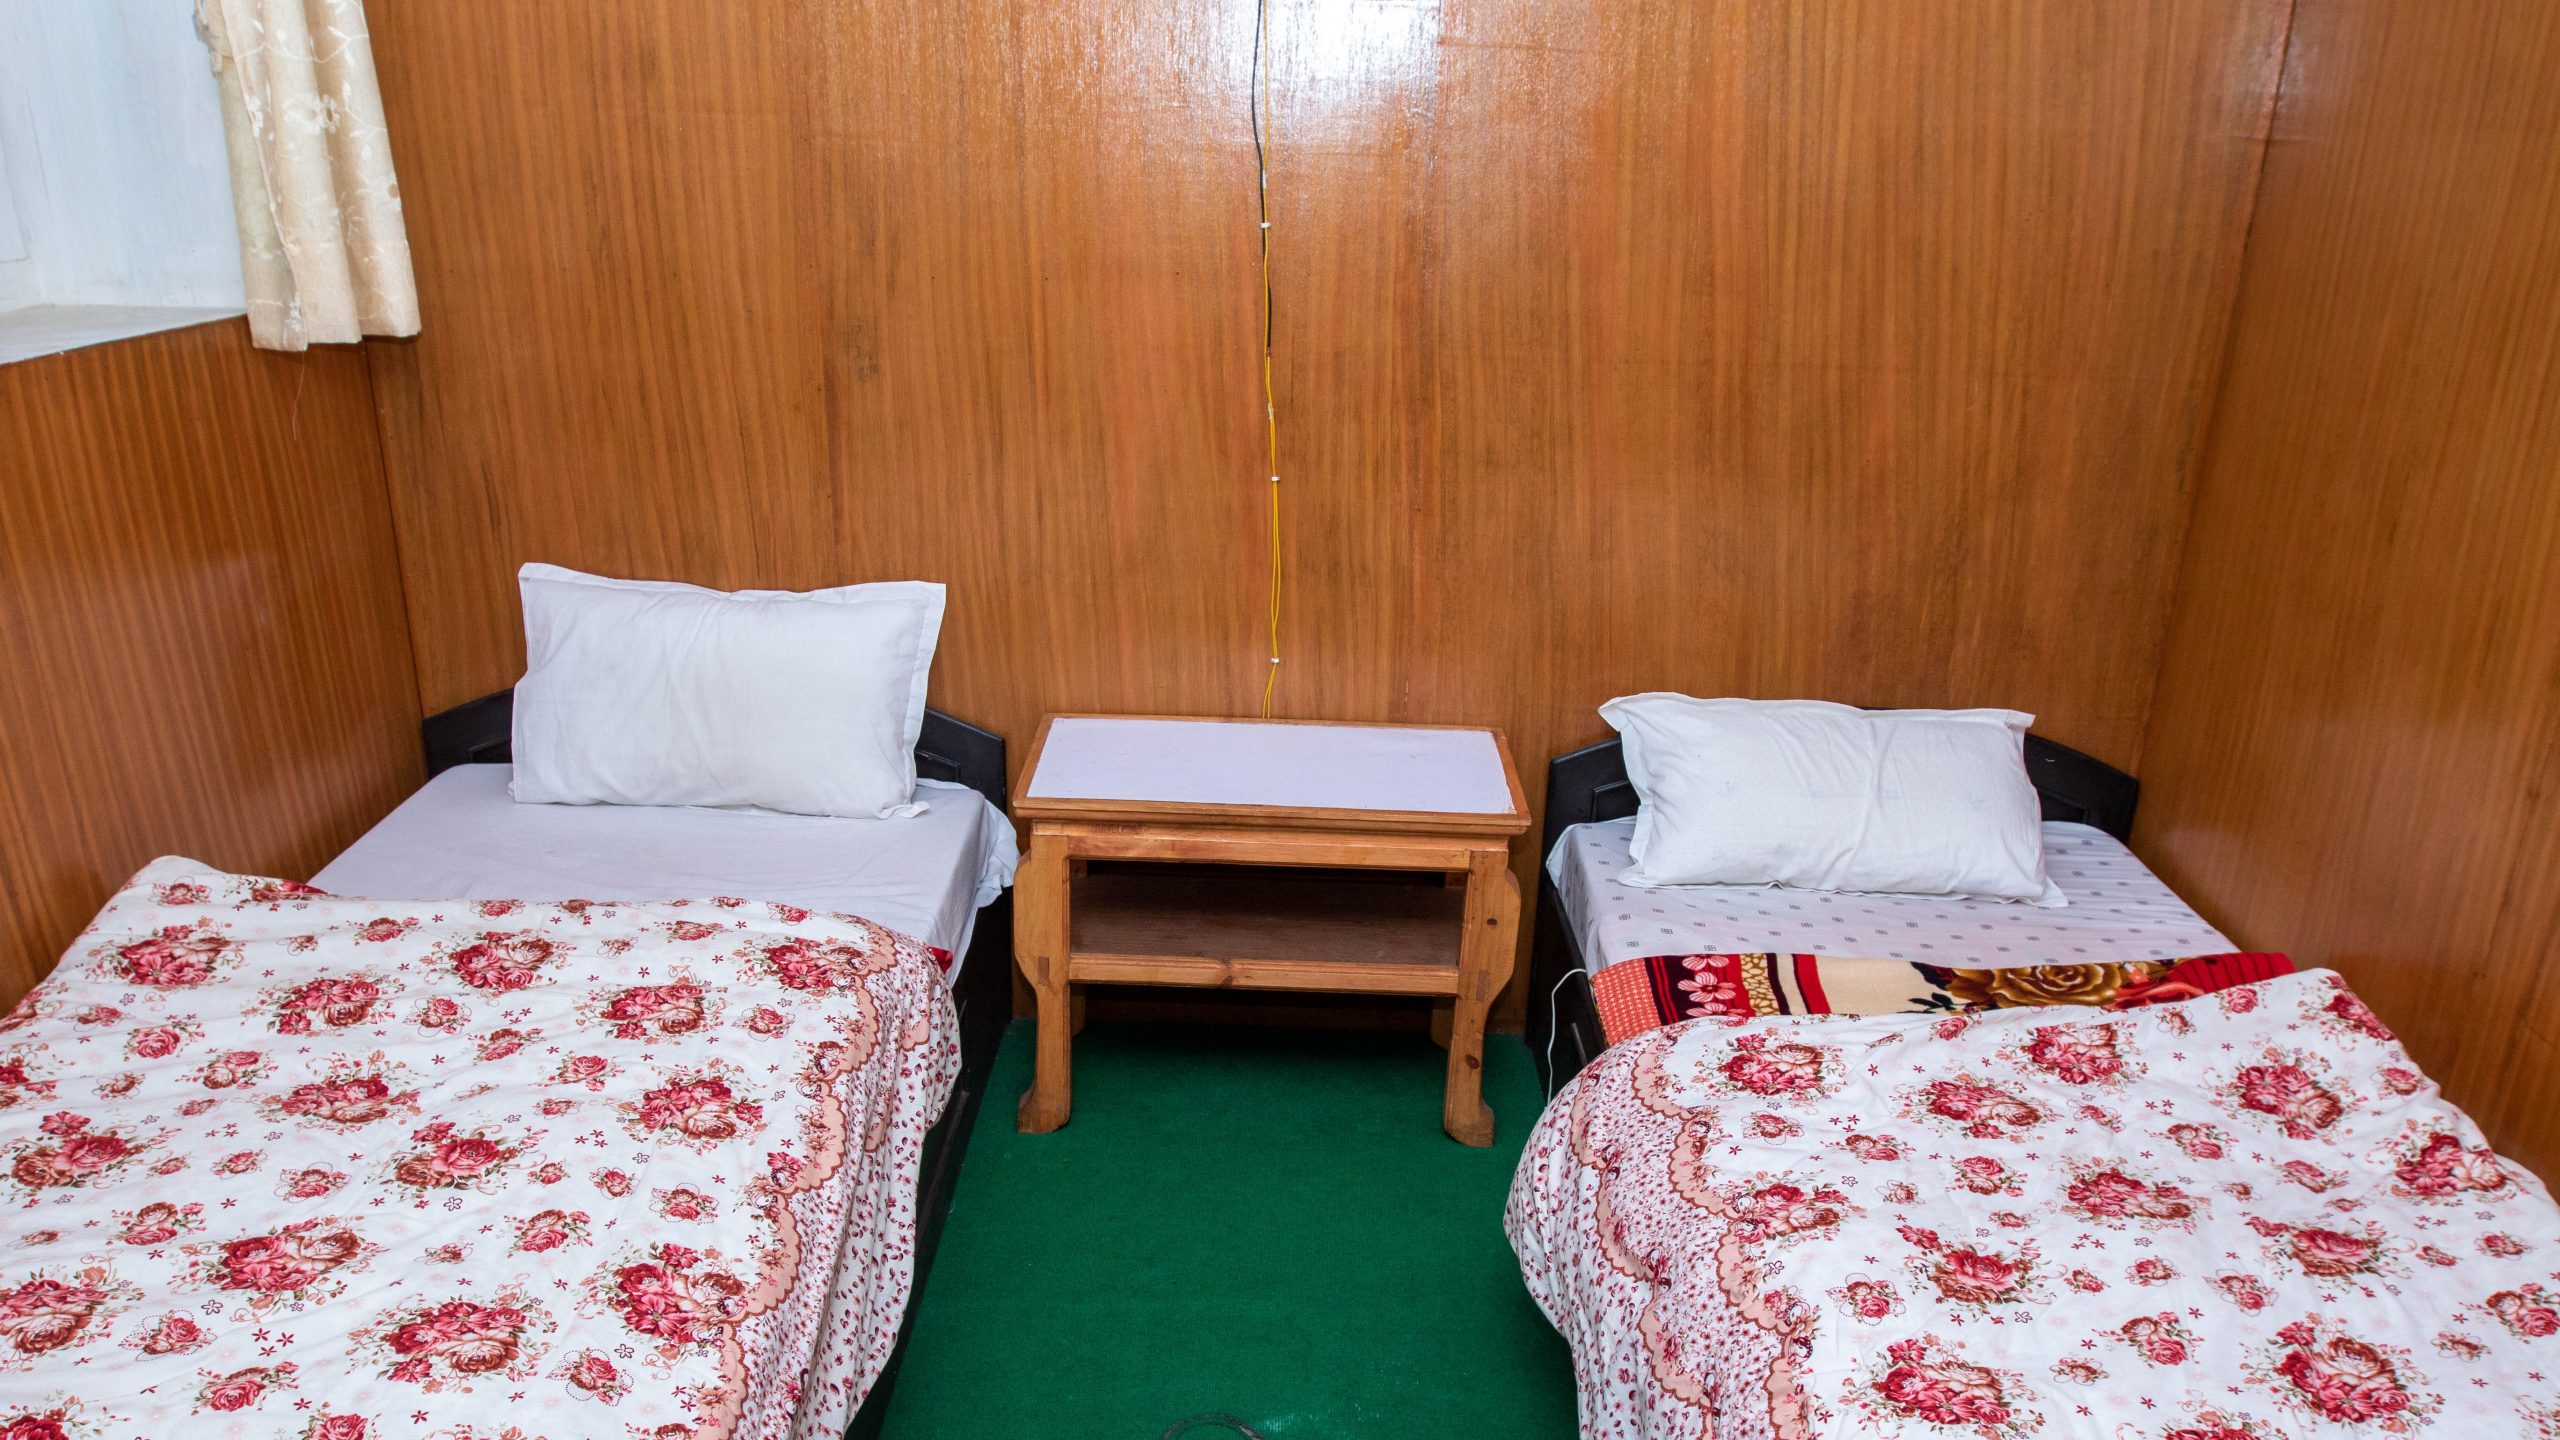 Basic Room in one of the hotels in Dingboche